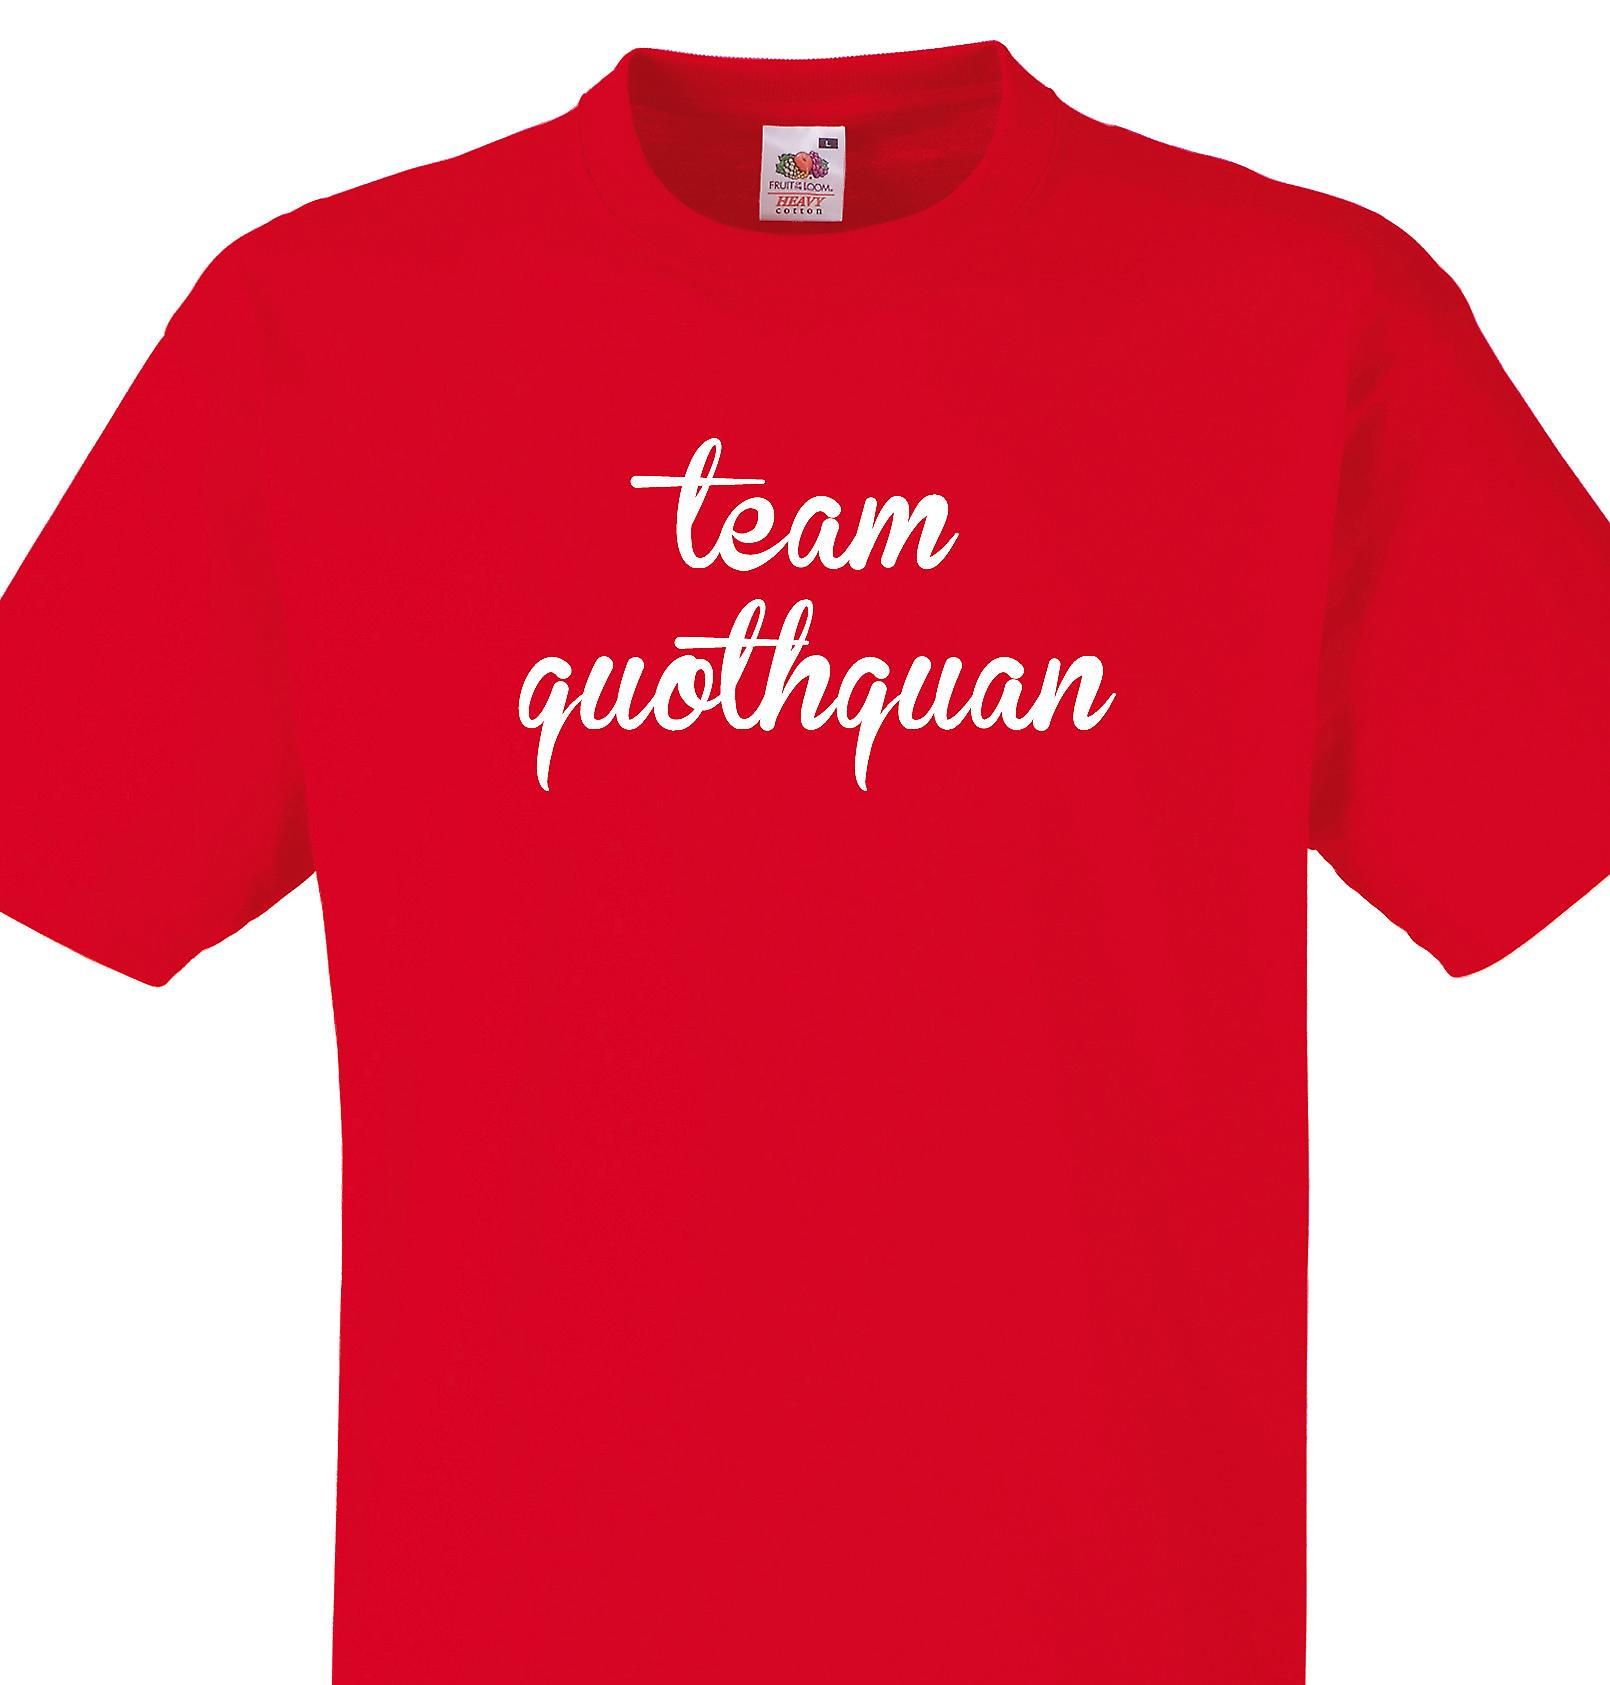 Team Quothquan Red T shirt